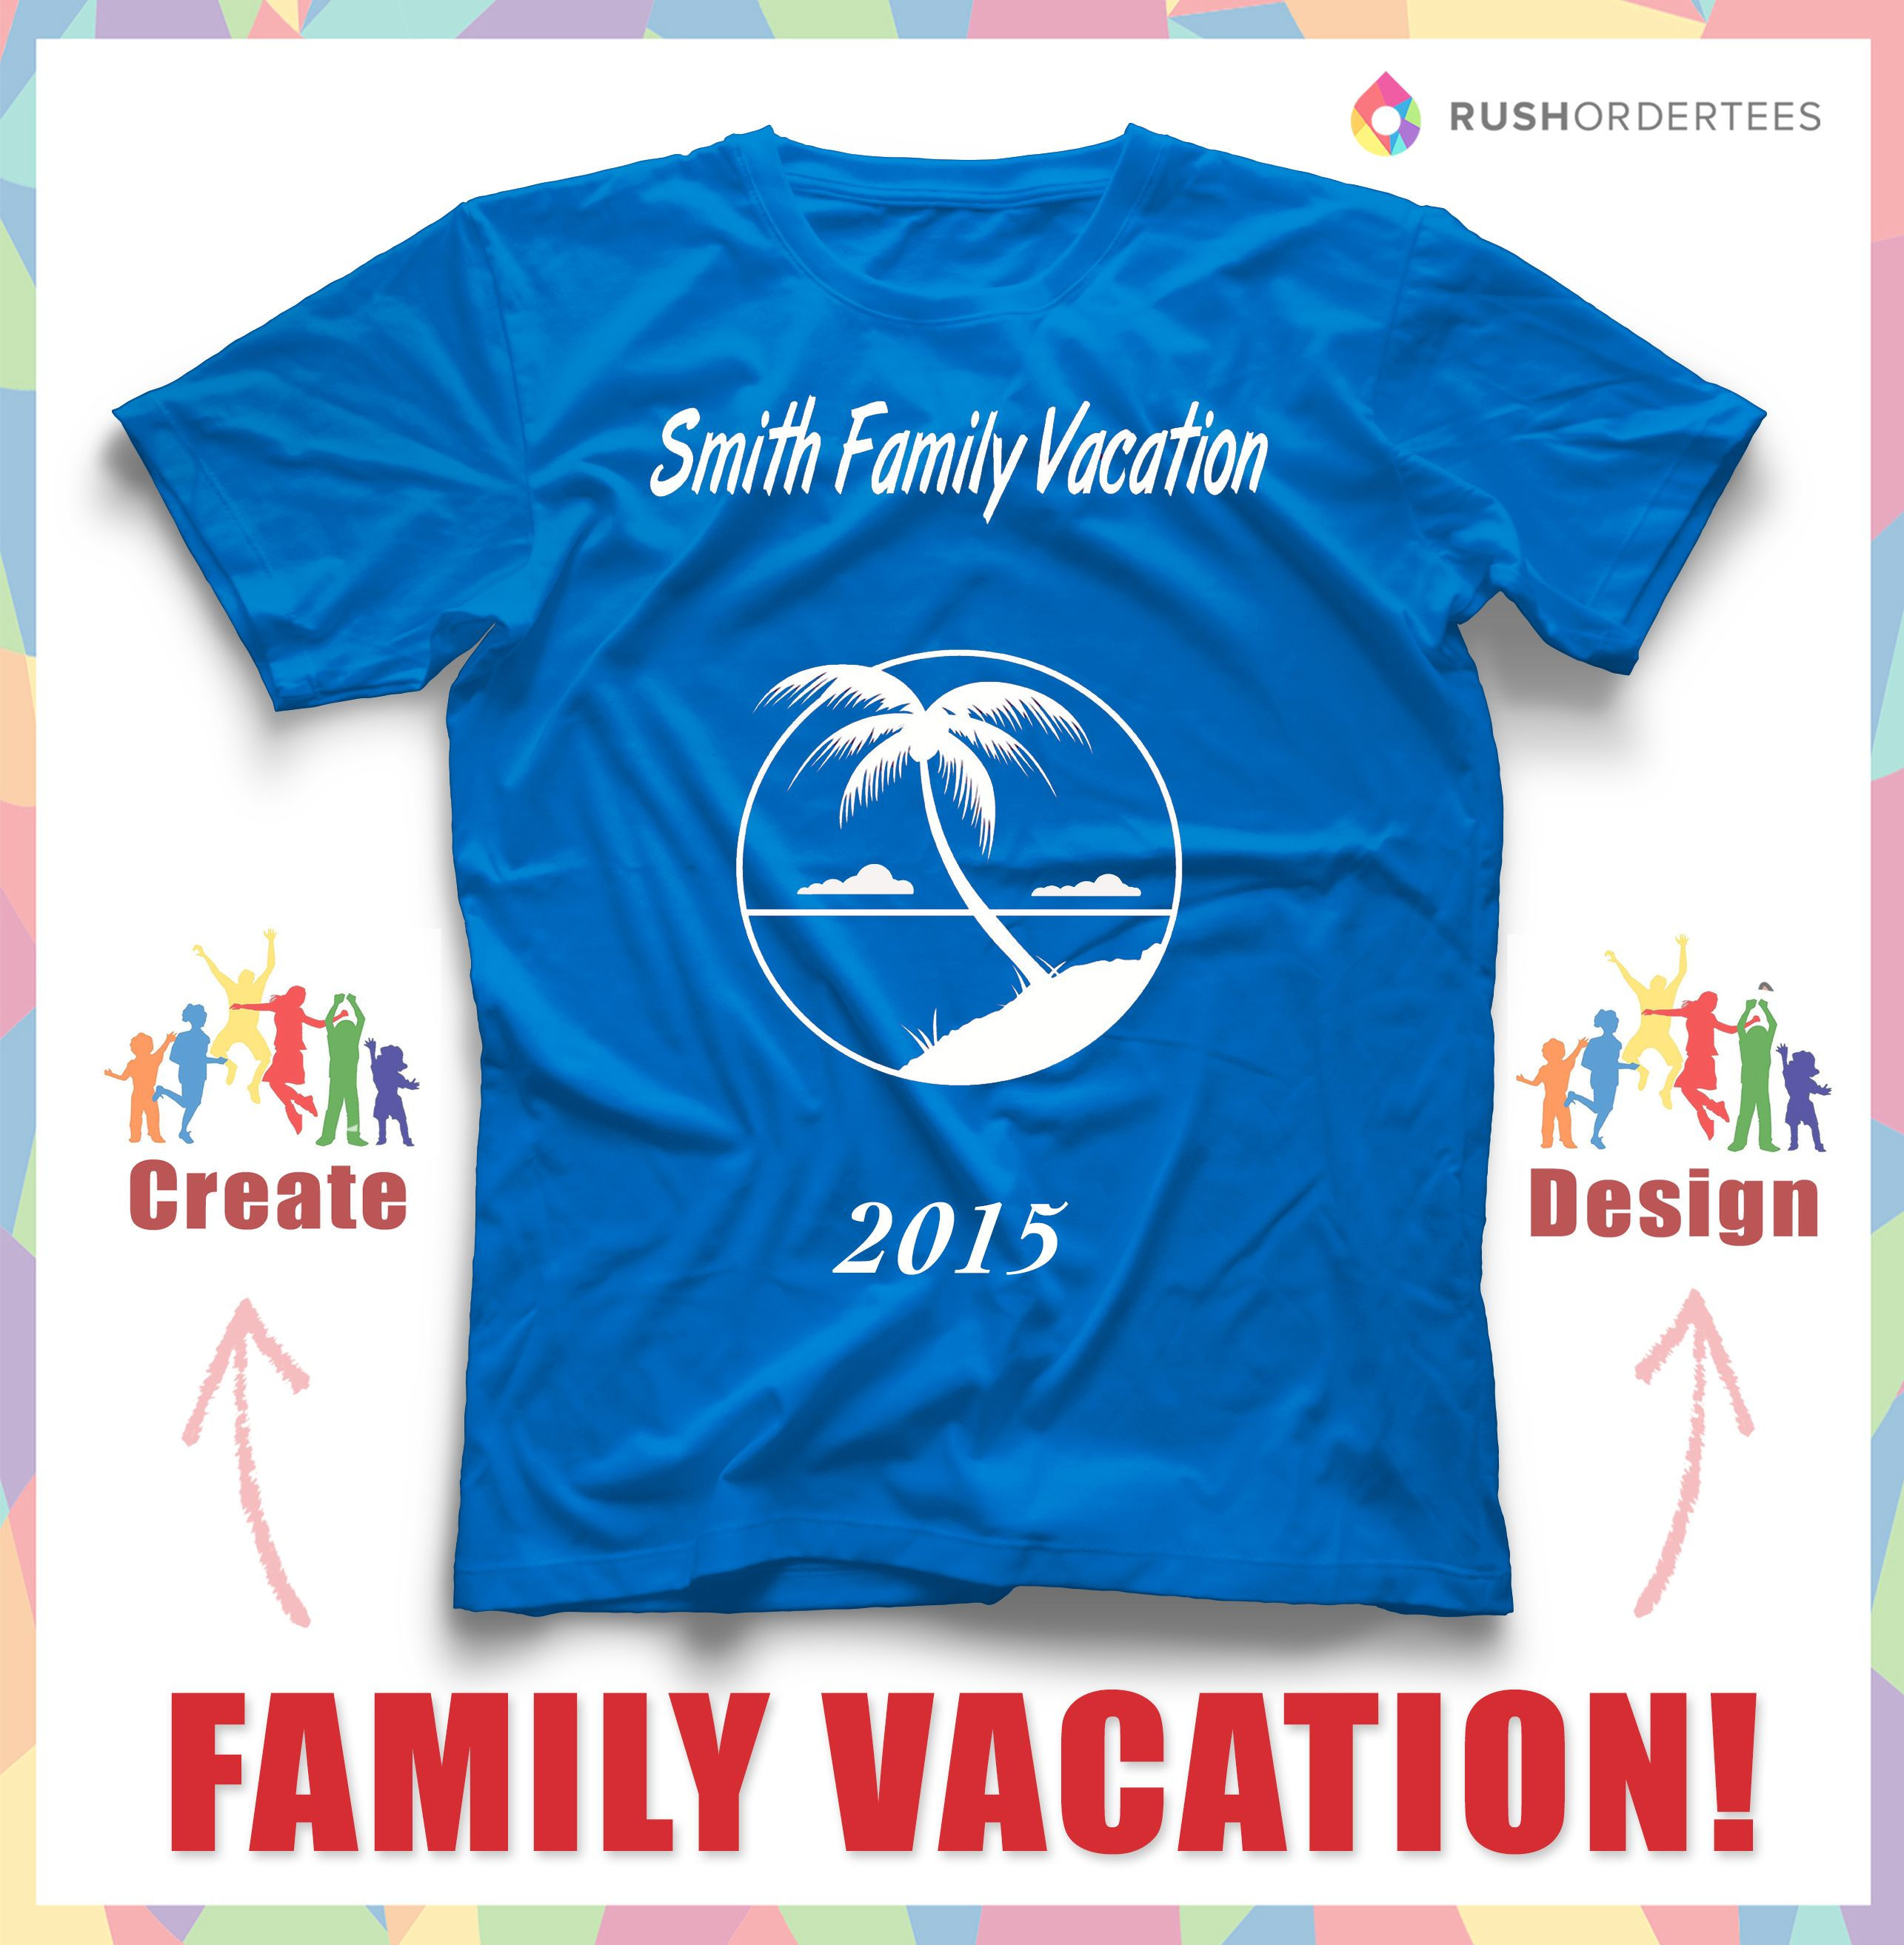 family cruise vacation custom t shirt design idea create a family vacation shirt design